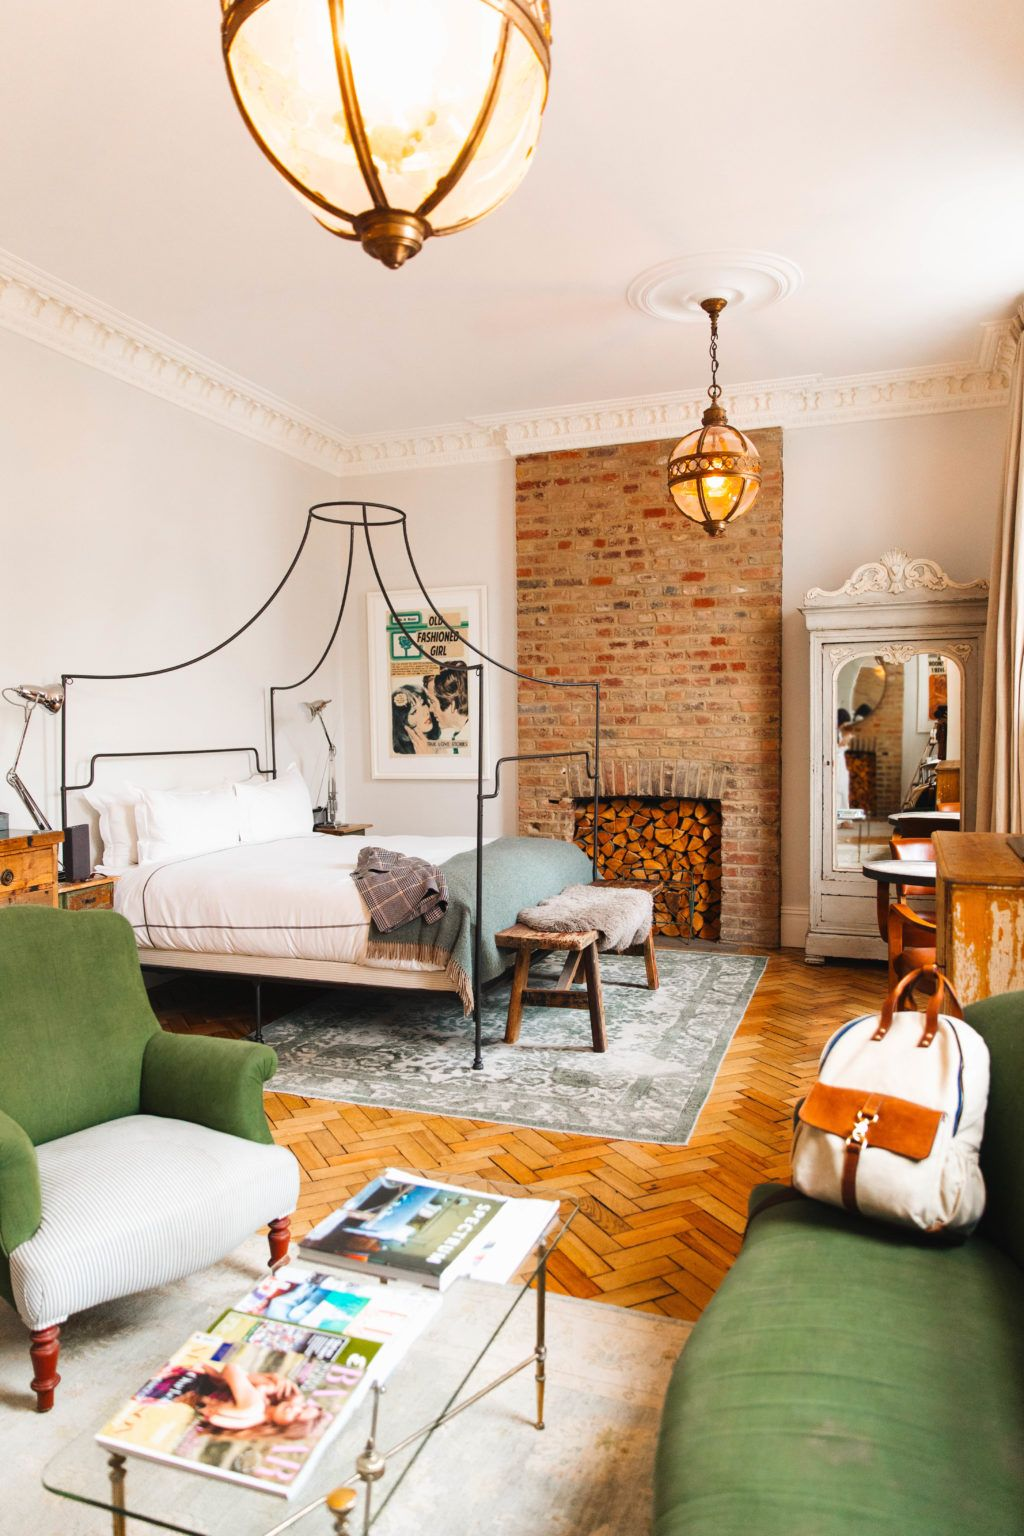 Wohnzimmerdesign London Where To Stay In London Artist Residence Hotel In  New